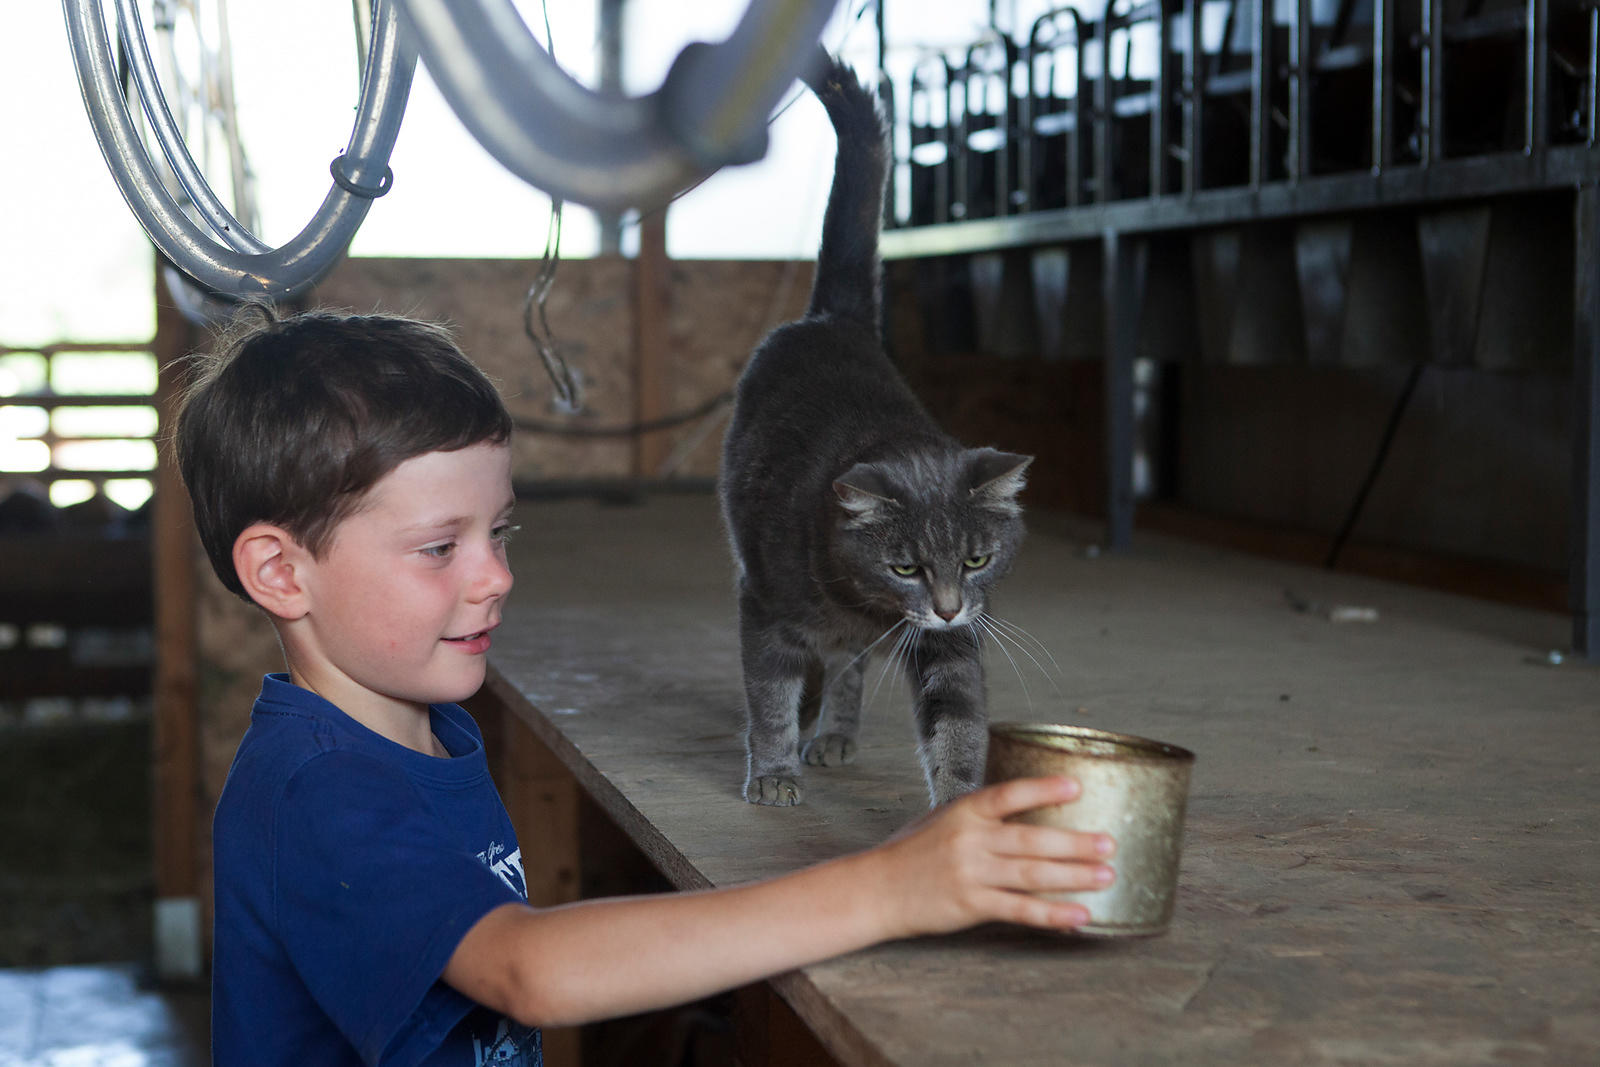 Enfant donnant du lait au chat de la ferme, France / Child giving milk to the cat of the farm, France